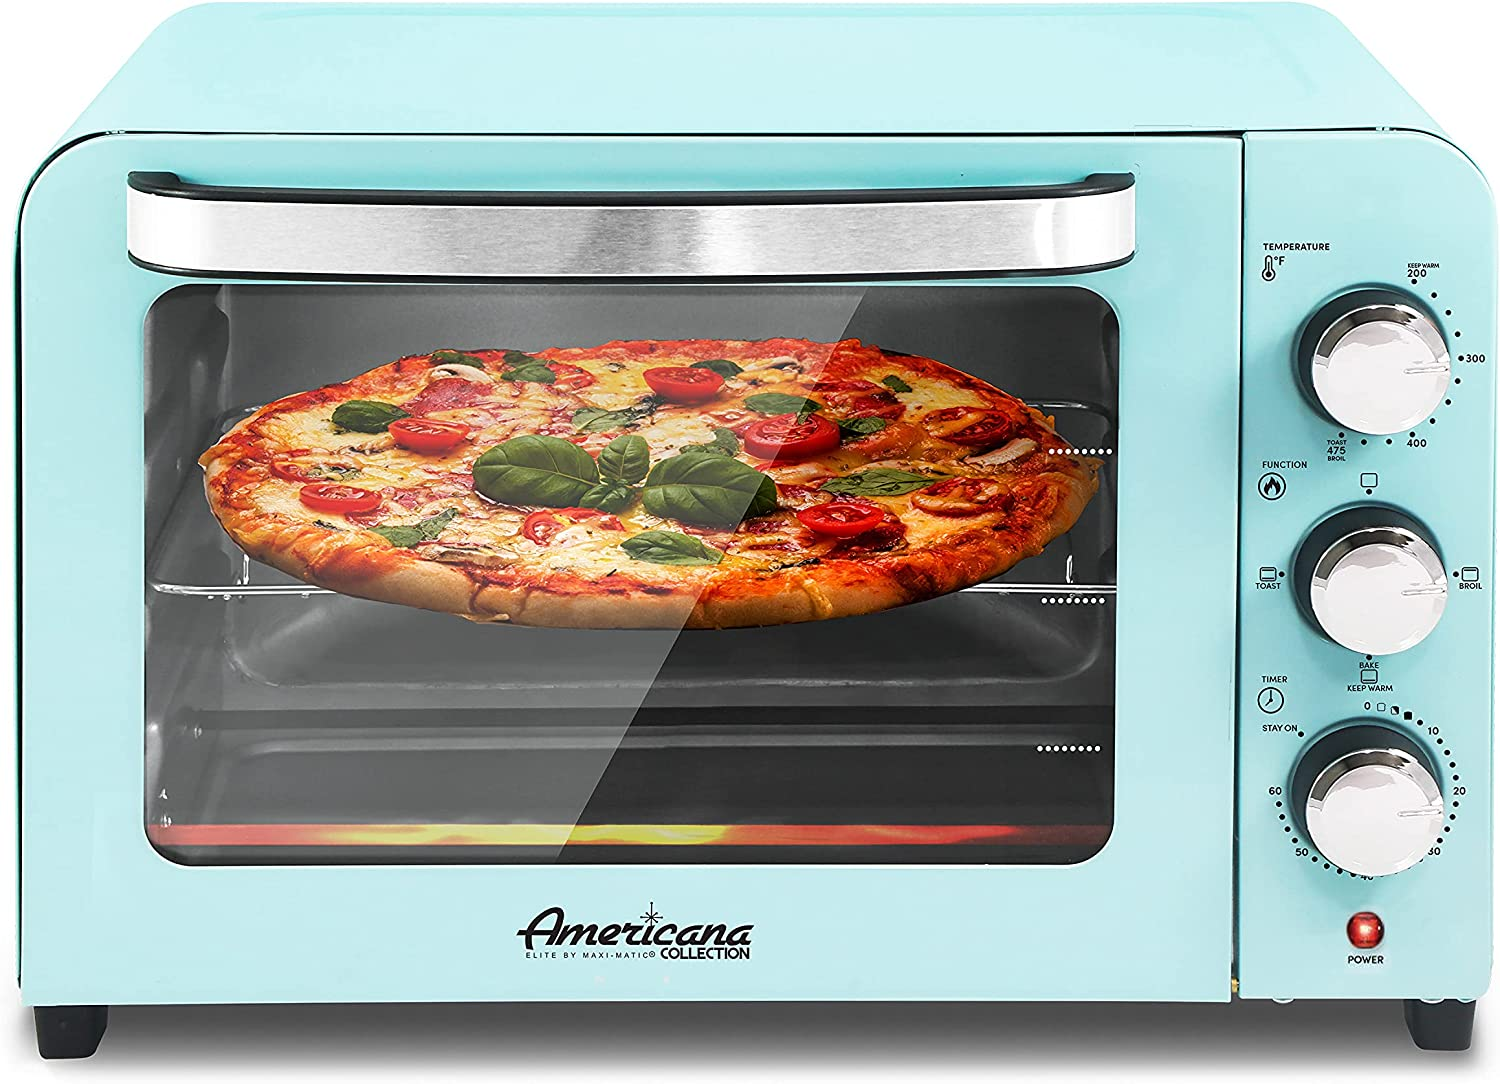 """Elite Gourmet Americana ETO2126BL Fits 12"""" Pizza, Vintage Diner 50's Retro Countertop Toaster oven Bake, Broil, Toast, Temperature Control & Adjustable 60-Minute Timer, Glass Door Printed Wrong"""